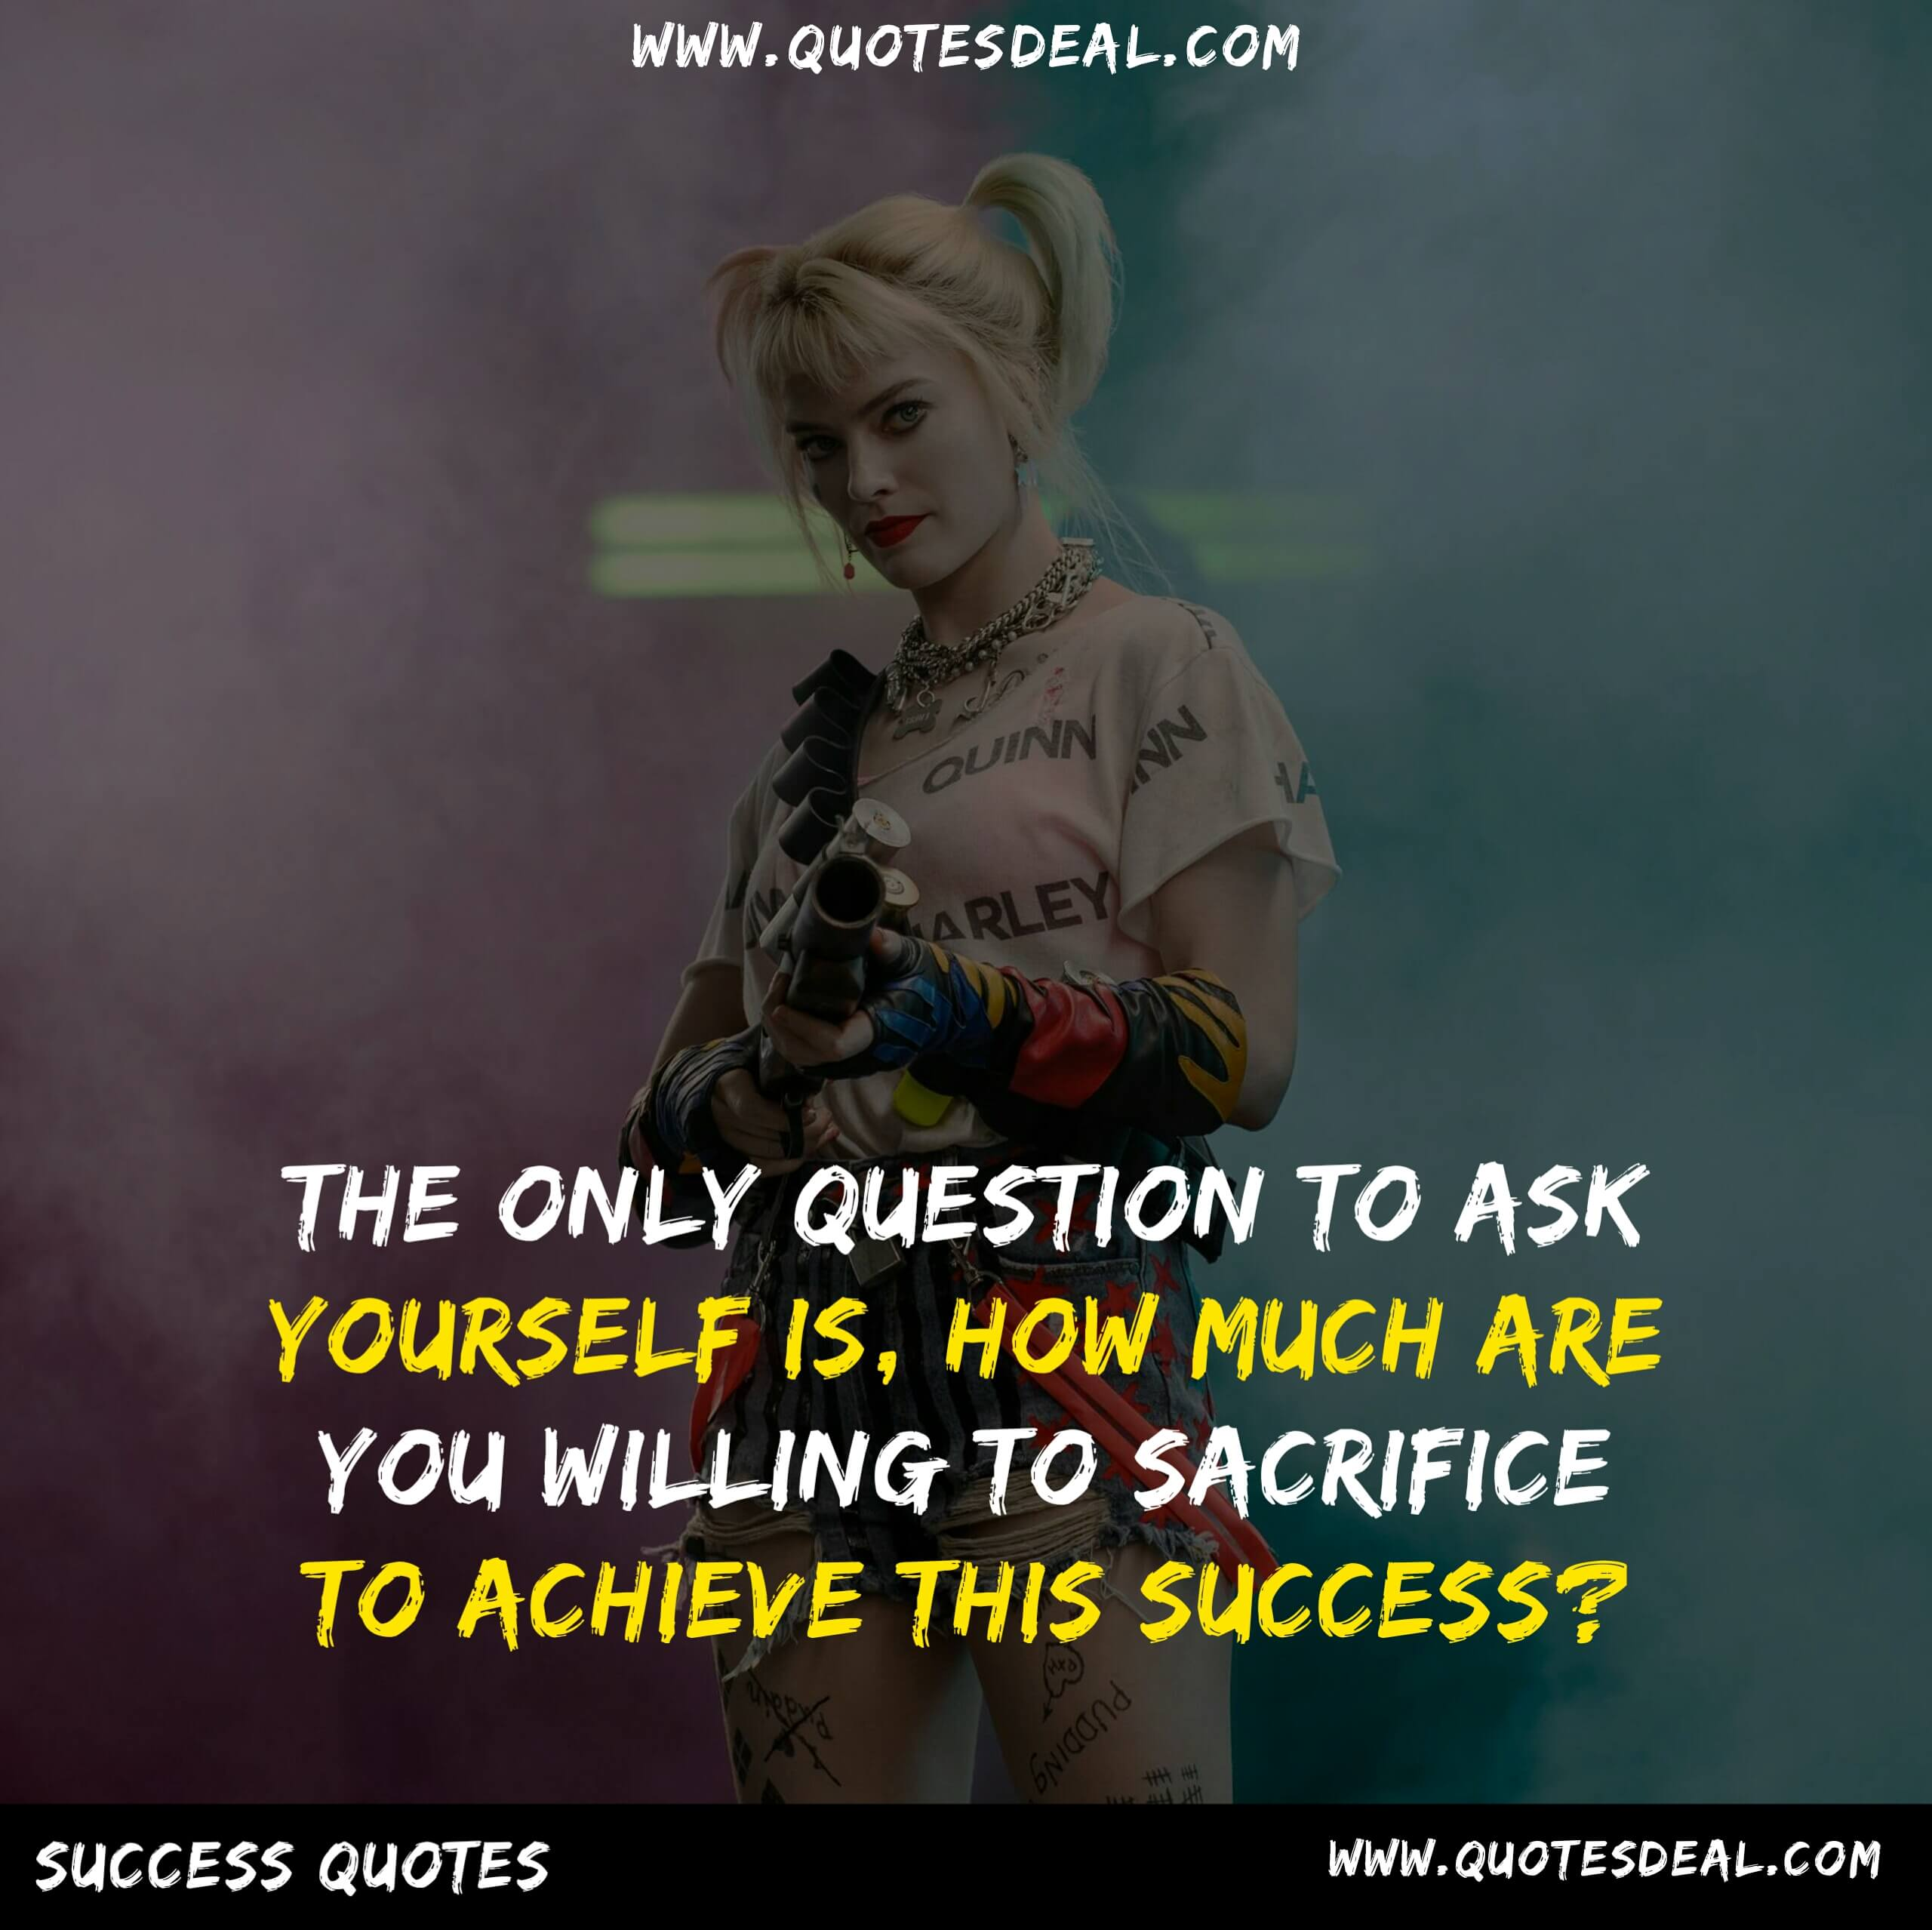 The only question to ask yourself